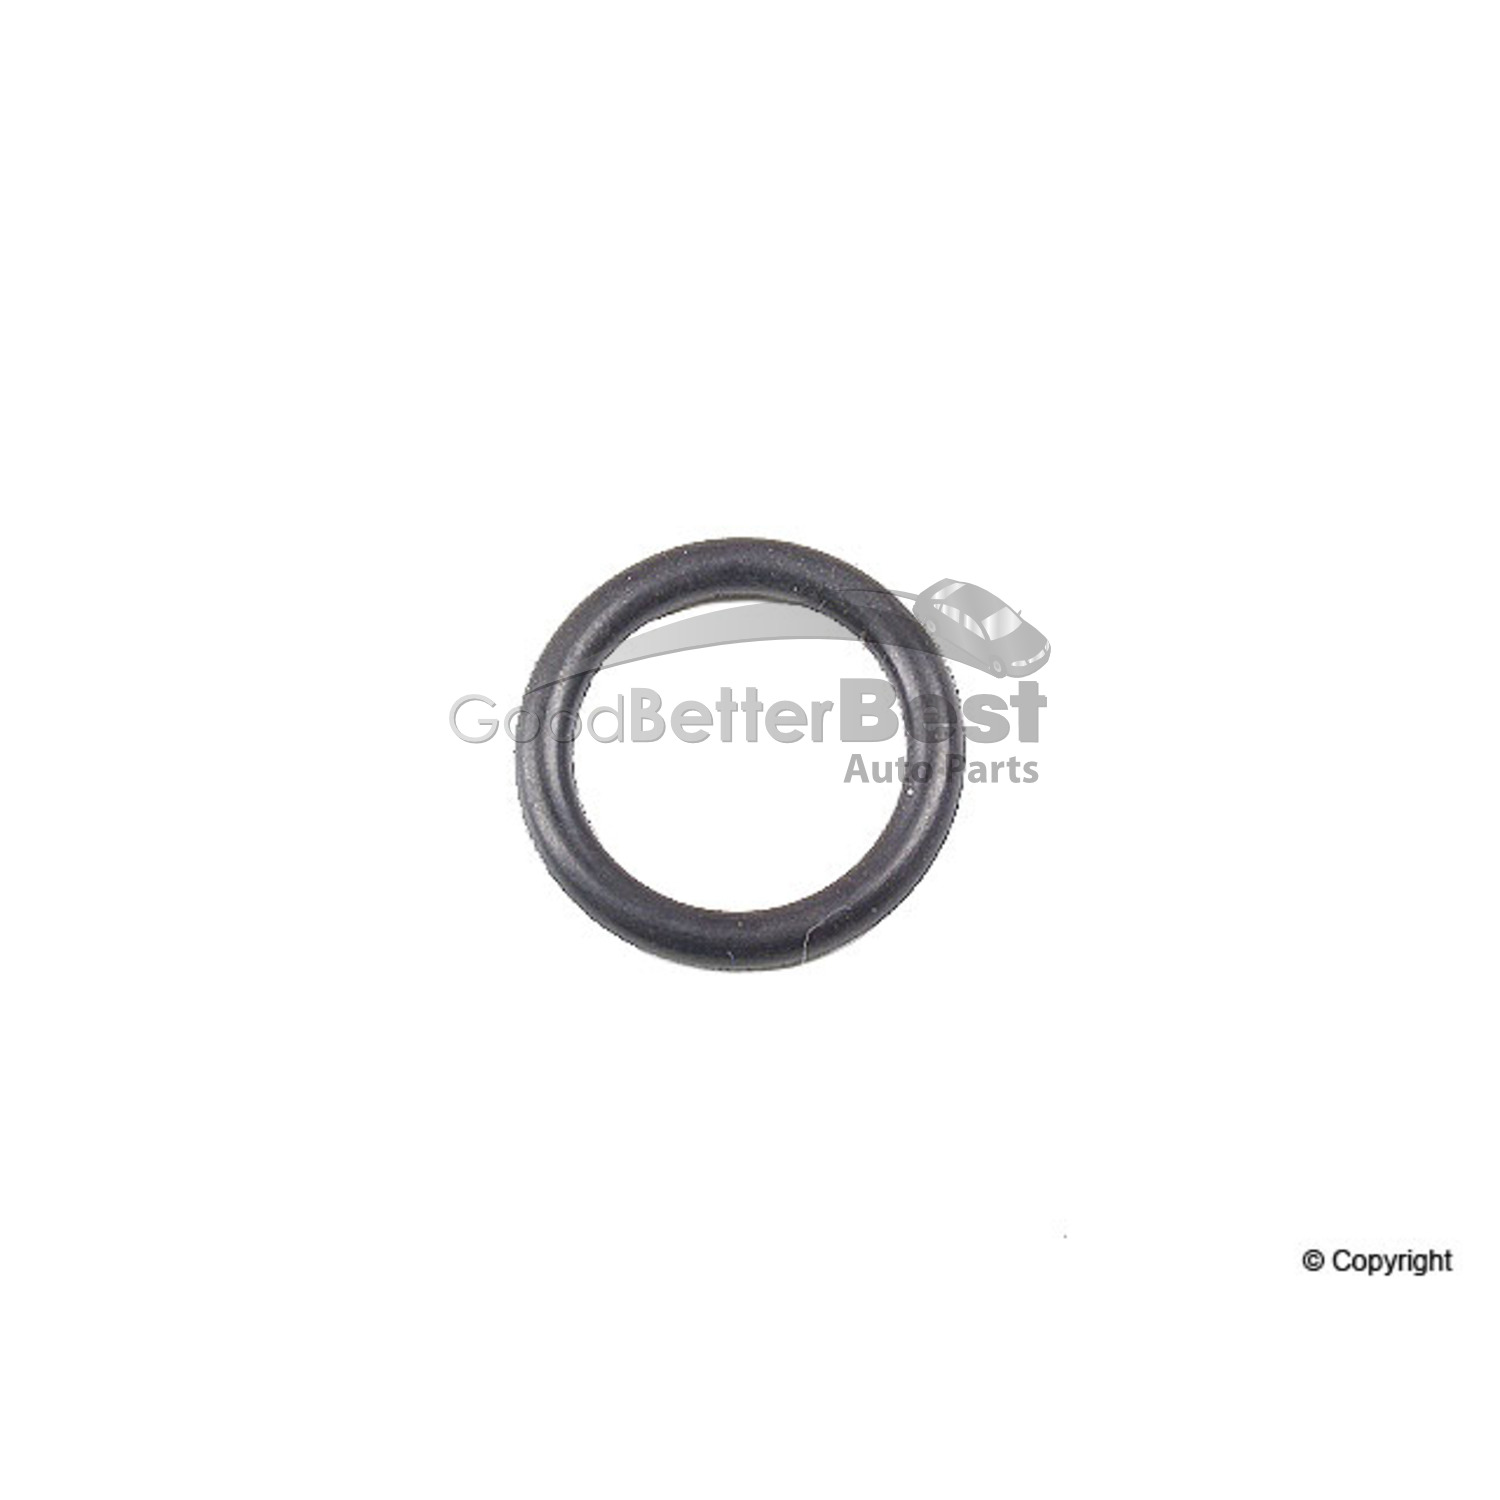 One New Genuine Fuel Filter O Ring For Mercedes